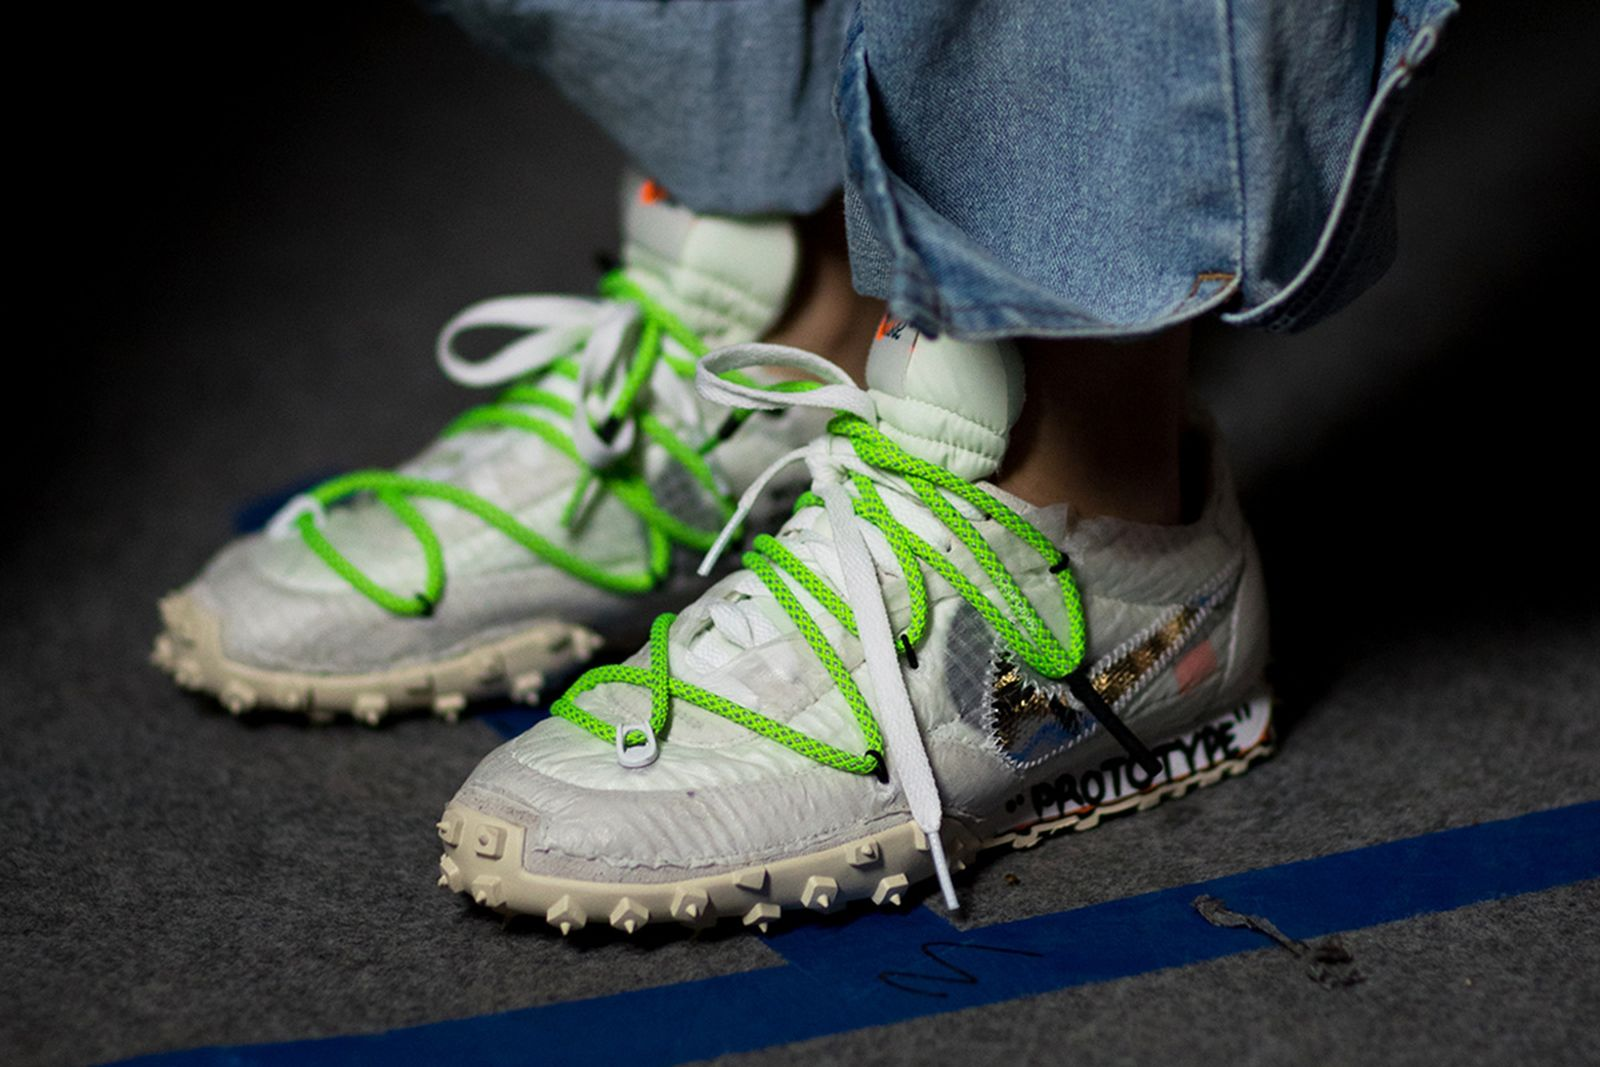 off white nike waffle racer release date price OFF-WHITE c/o Virgil Abloh OFF–WHITE x Nike